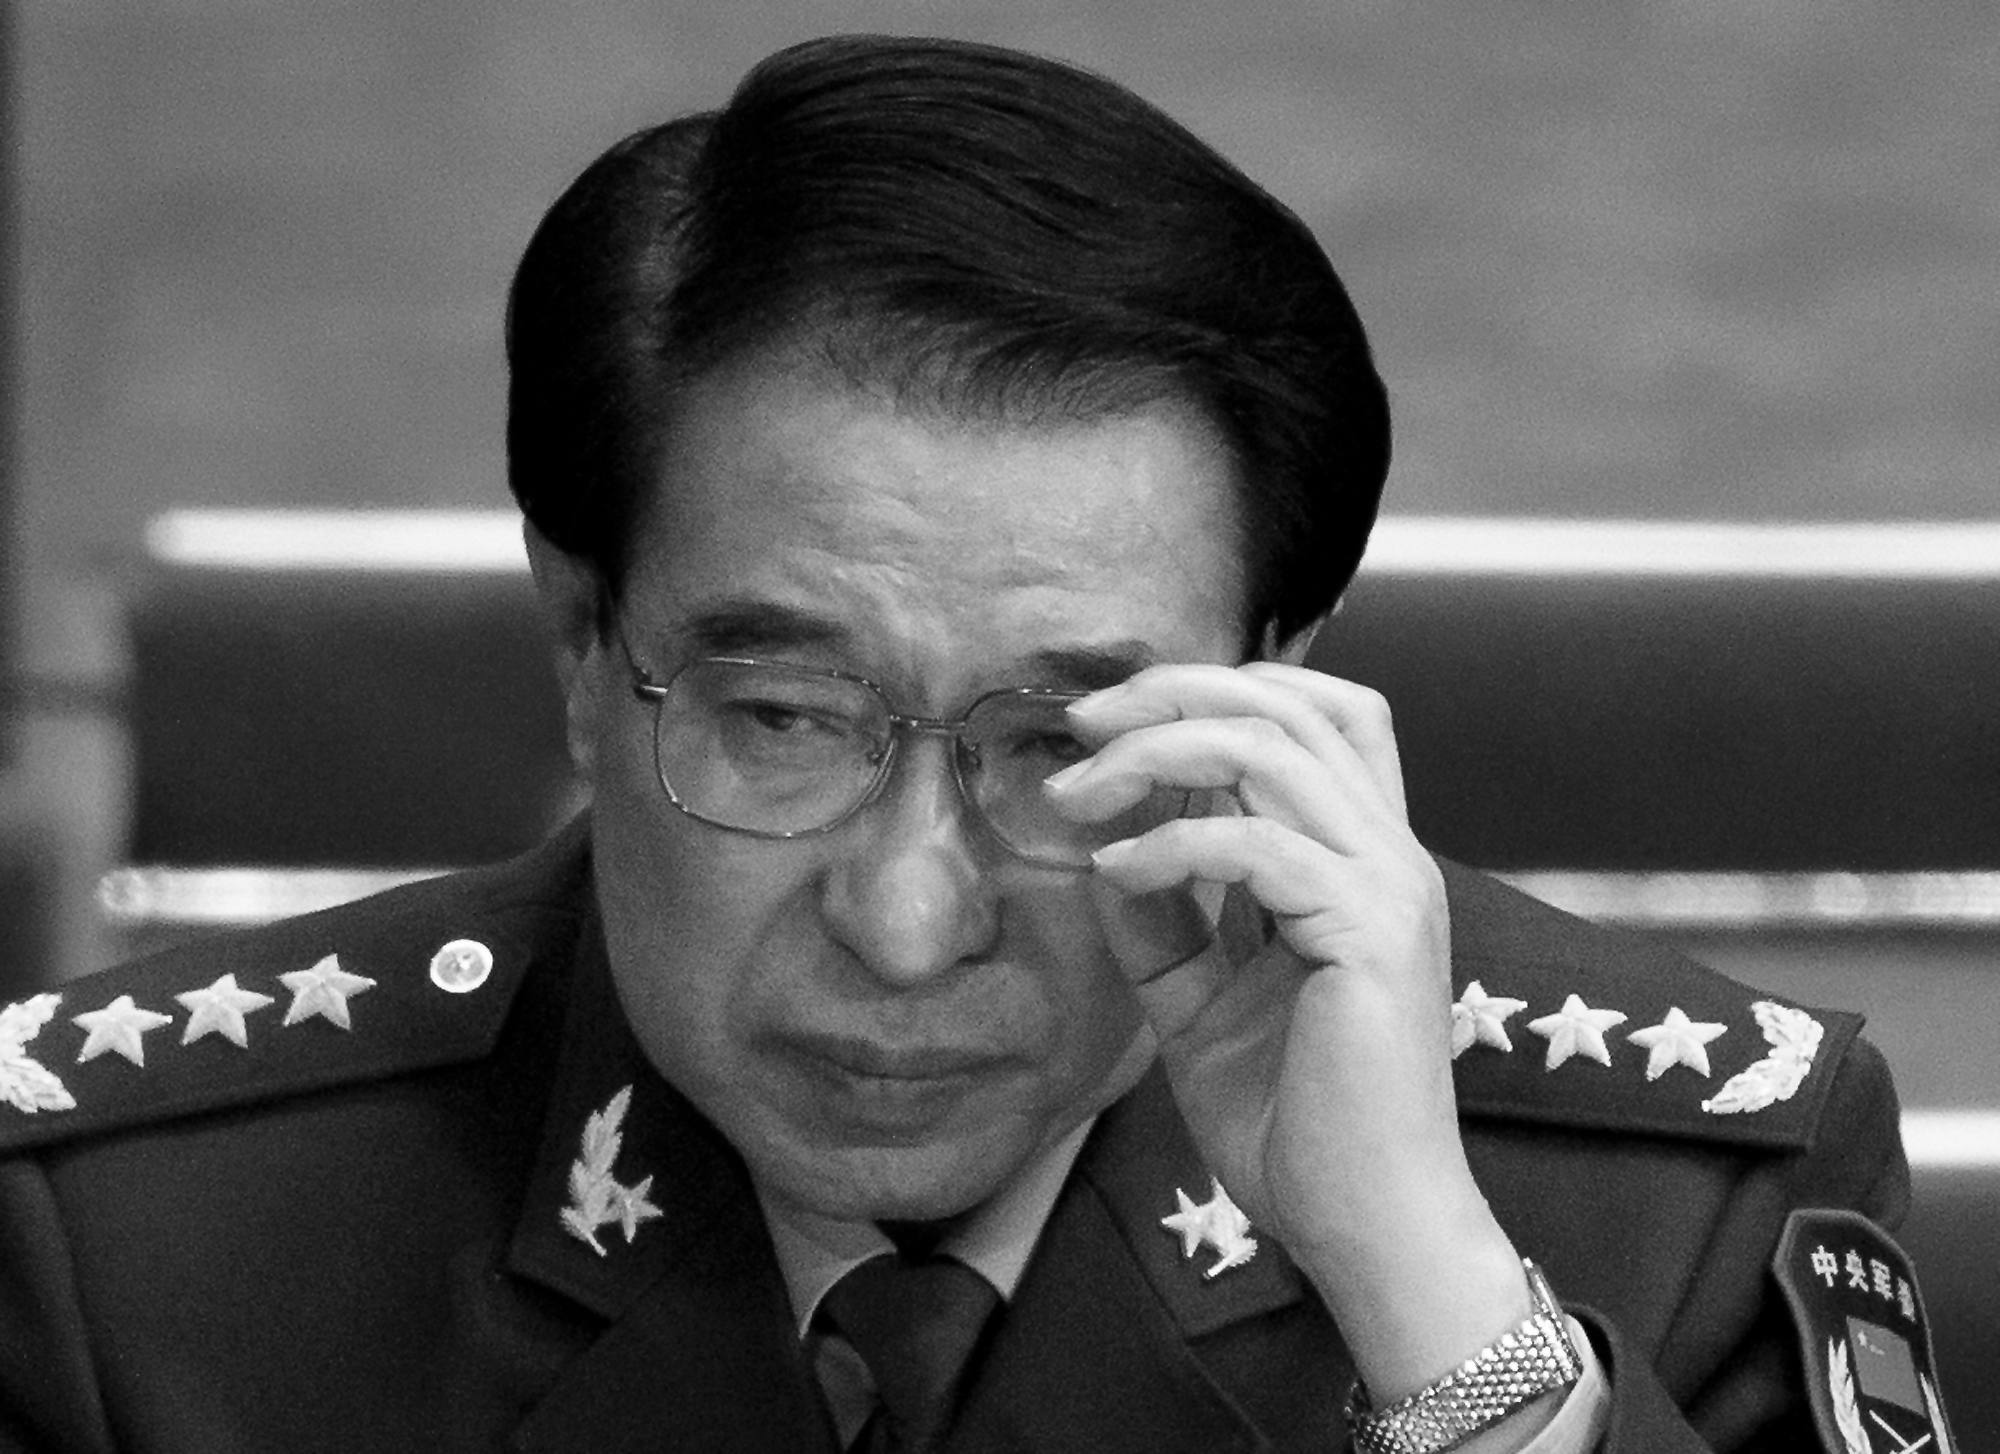 Xu Caihou, the late chairman of the CPC Central Military Commission, attends a plenary session National People's Congress at the Great Hall of the People in Beijing, China, on March 11, 2012. (AP Photo/Andy Wong)